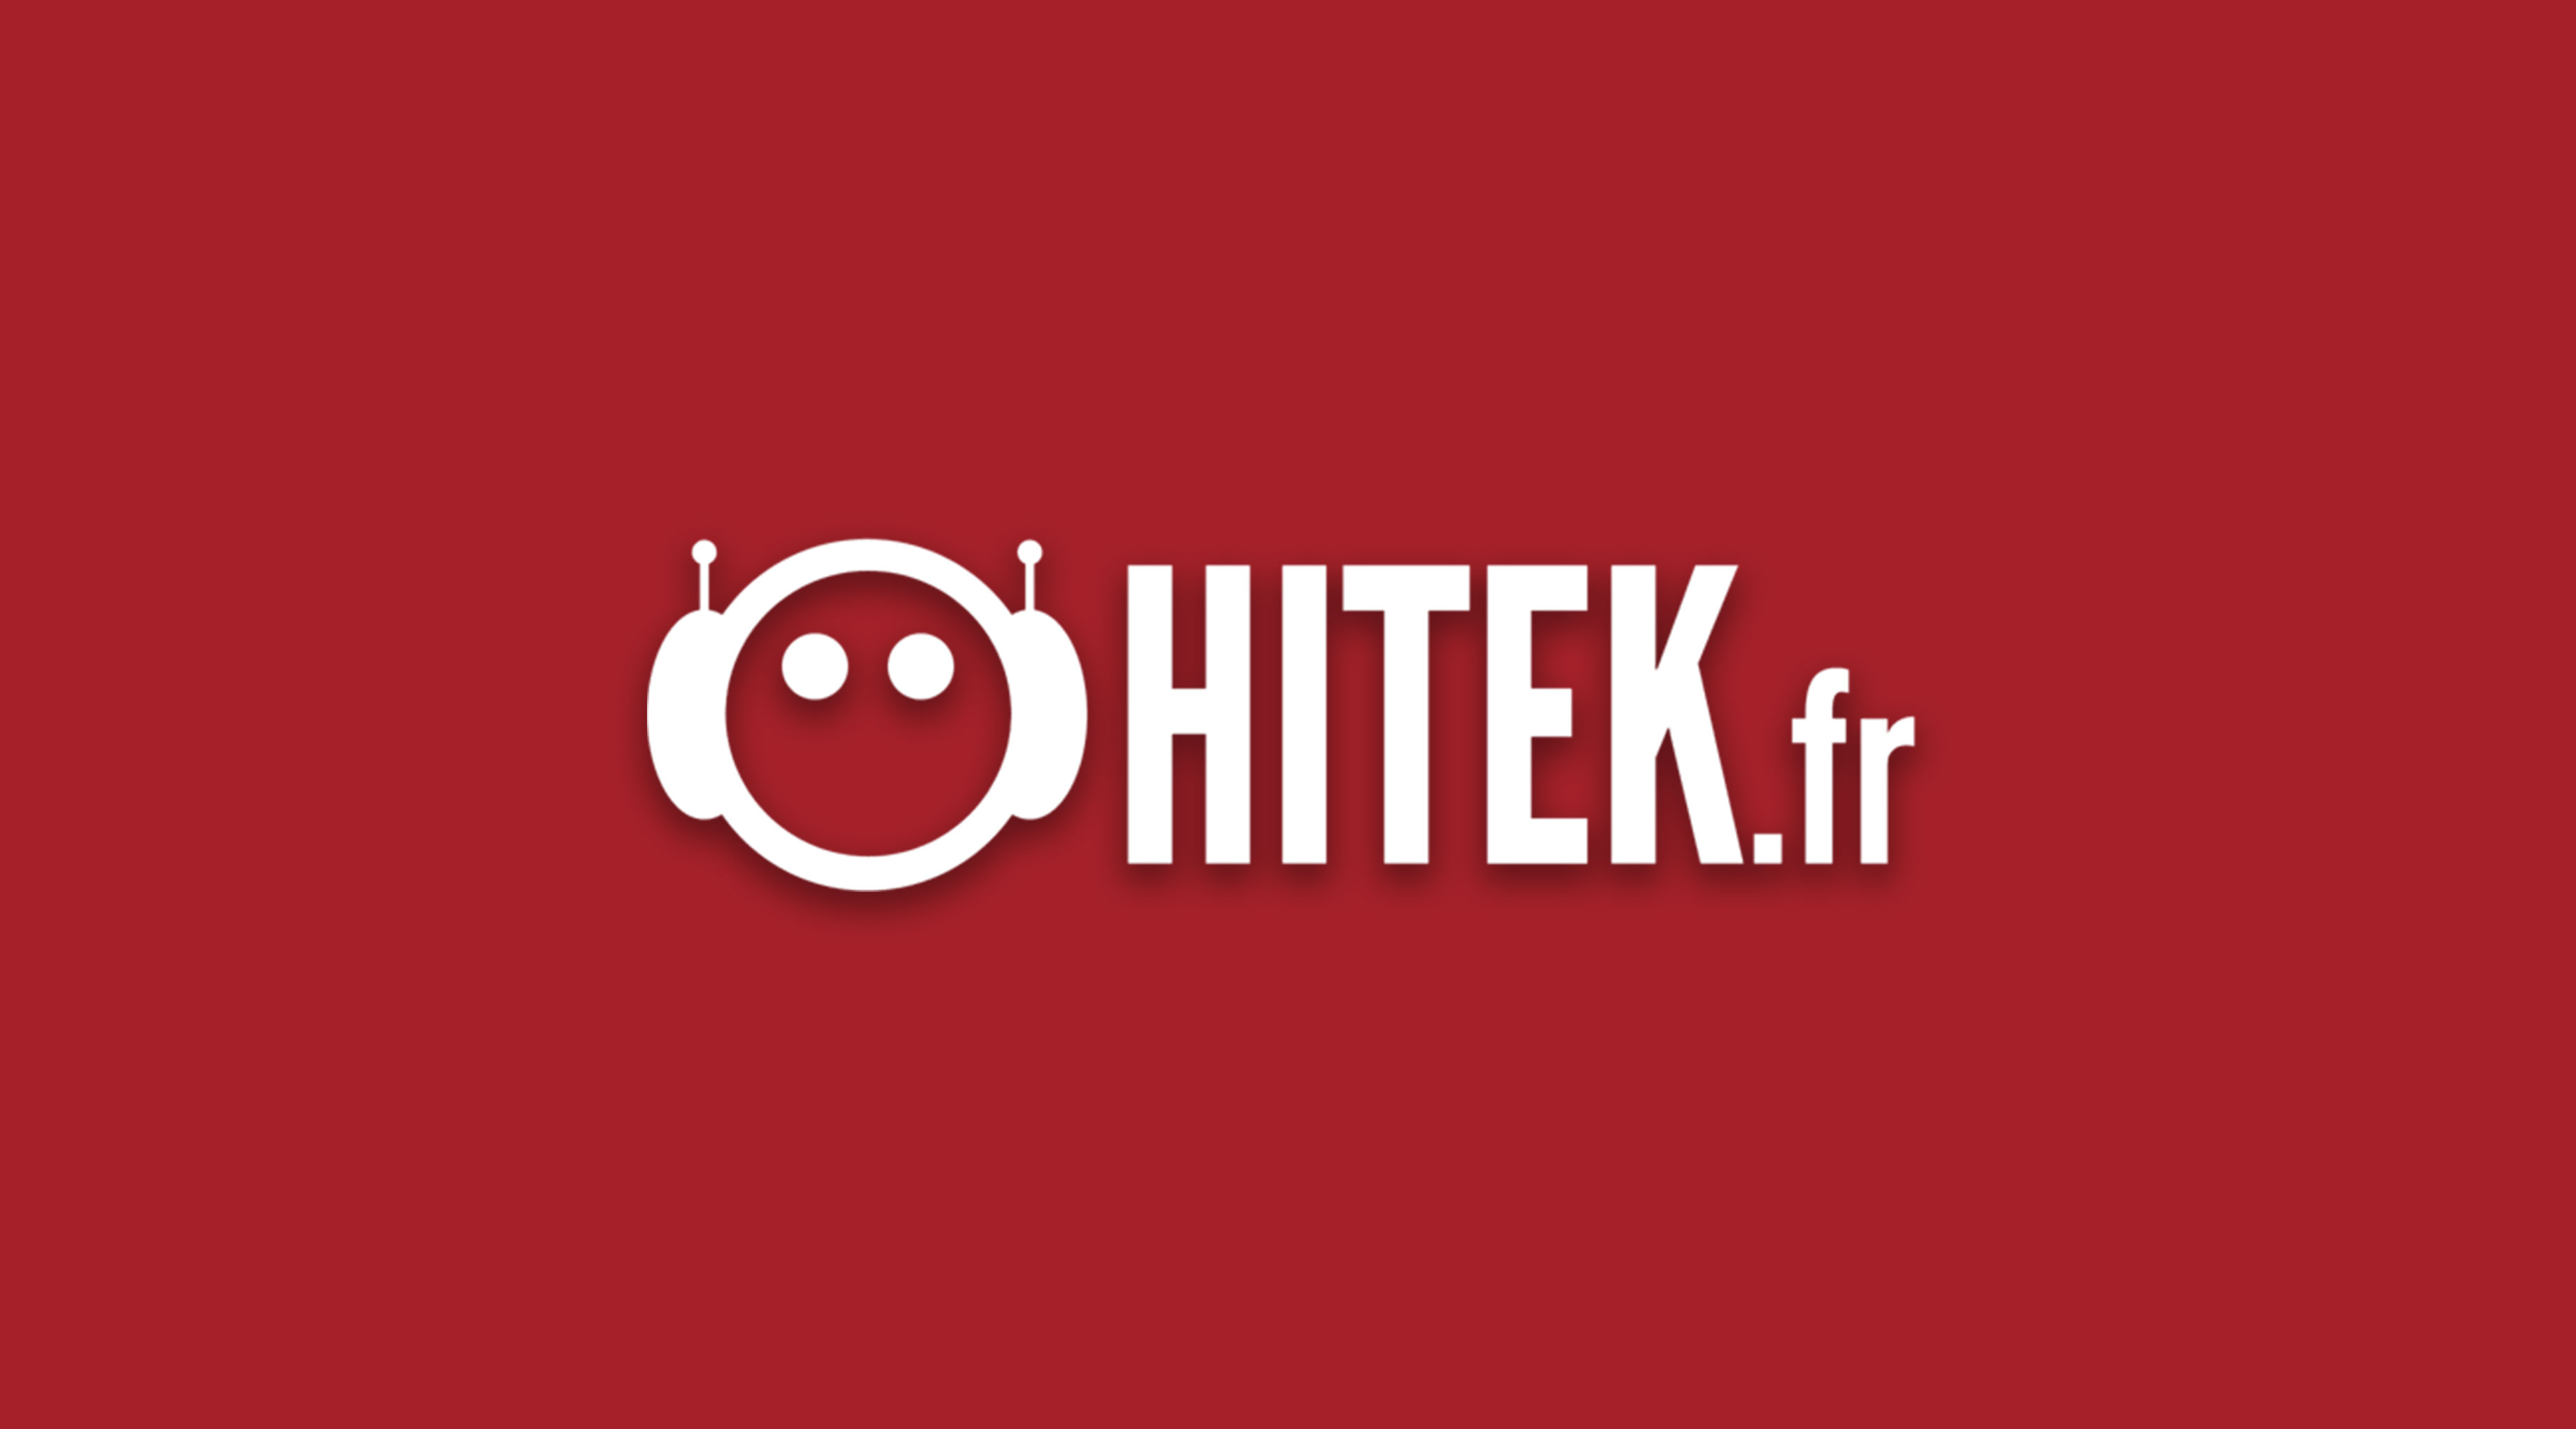 Motion Design - Hitek